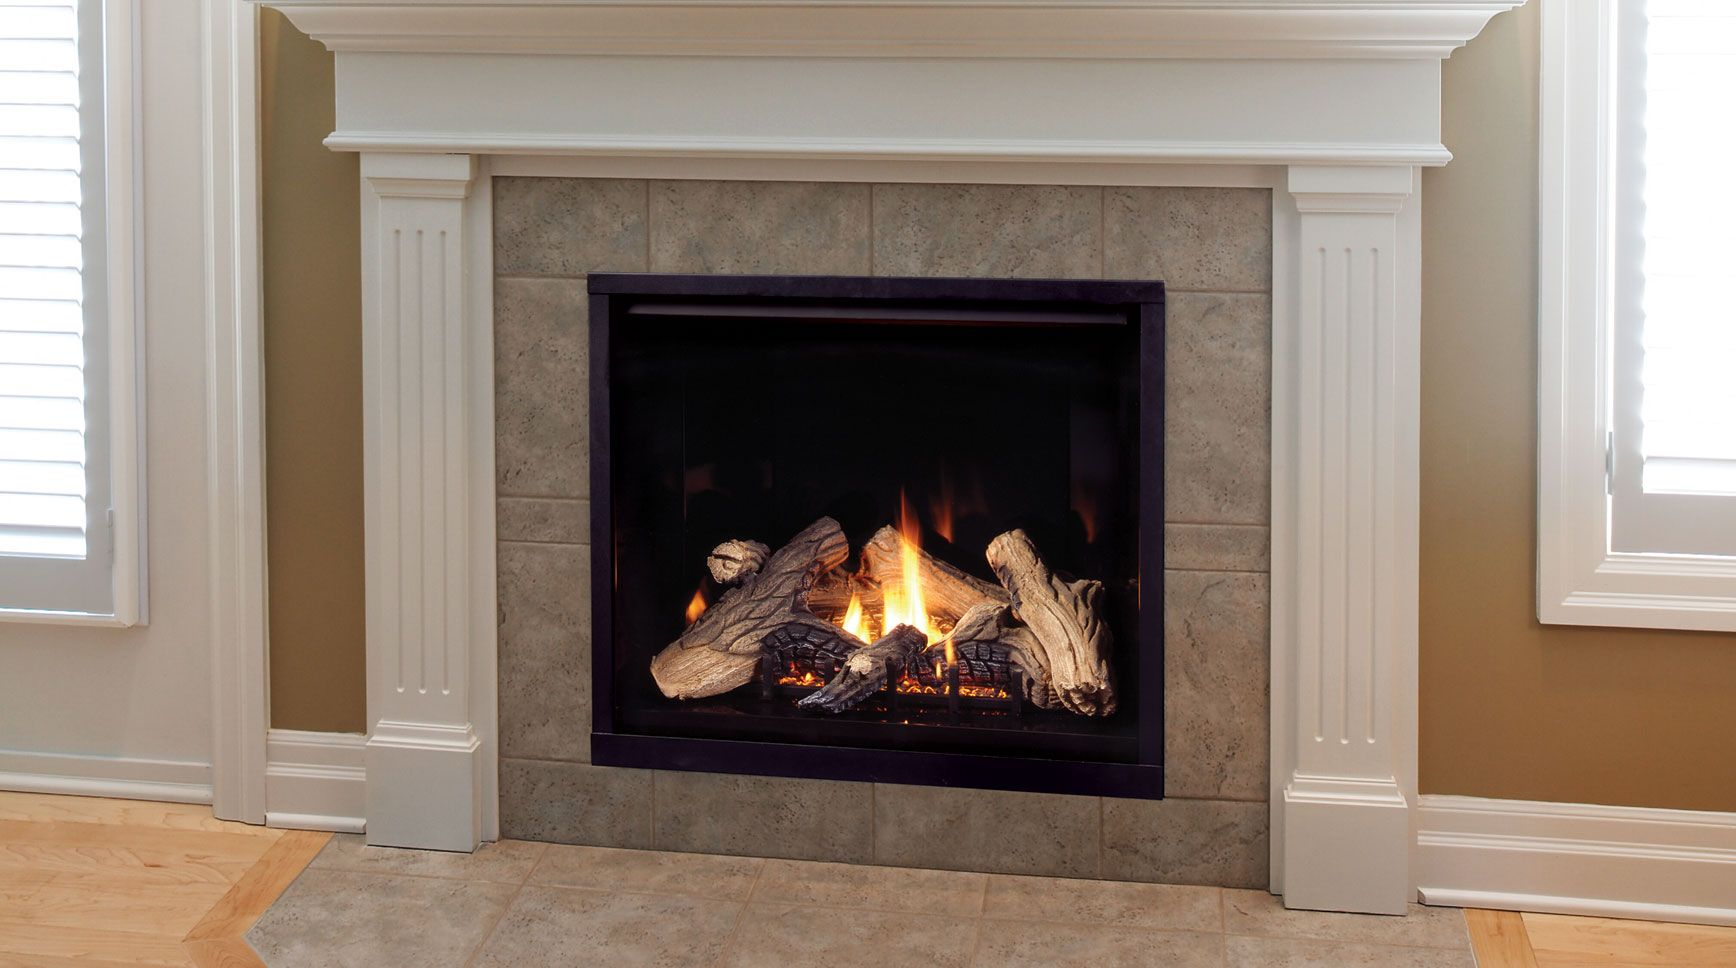 Gas fireplaces come in vented or non-vented systems. Not sure of the difference? Call our experts at 1-800-201-1193